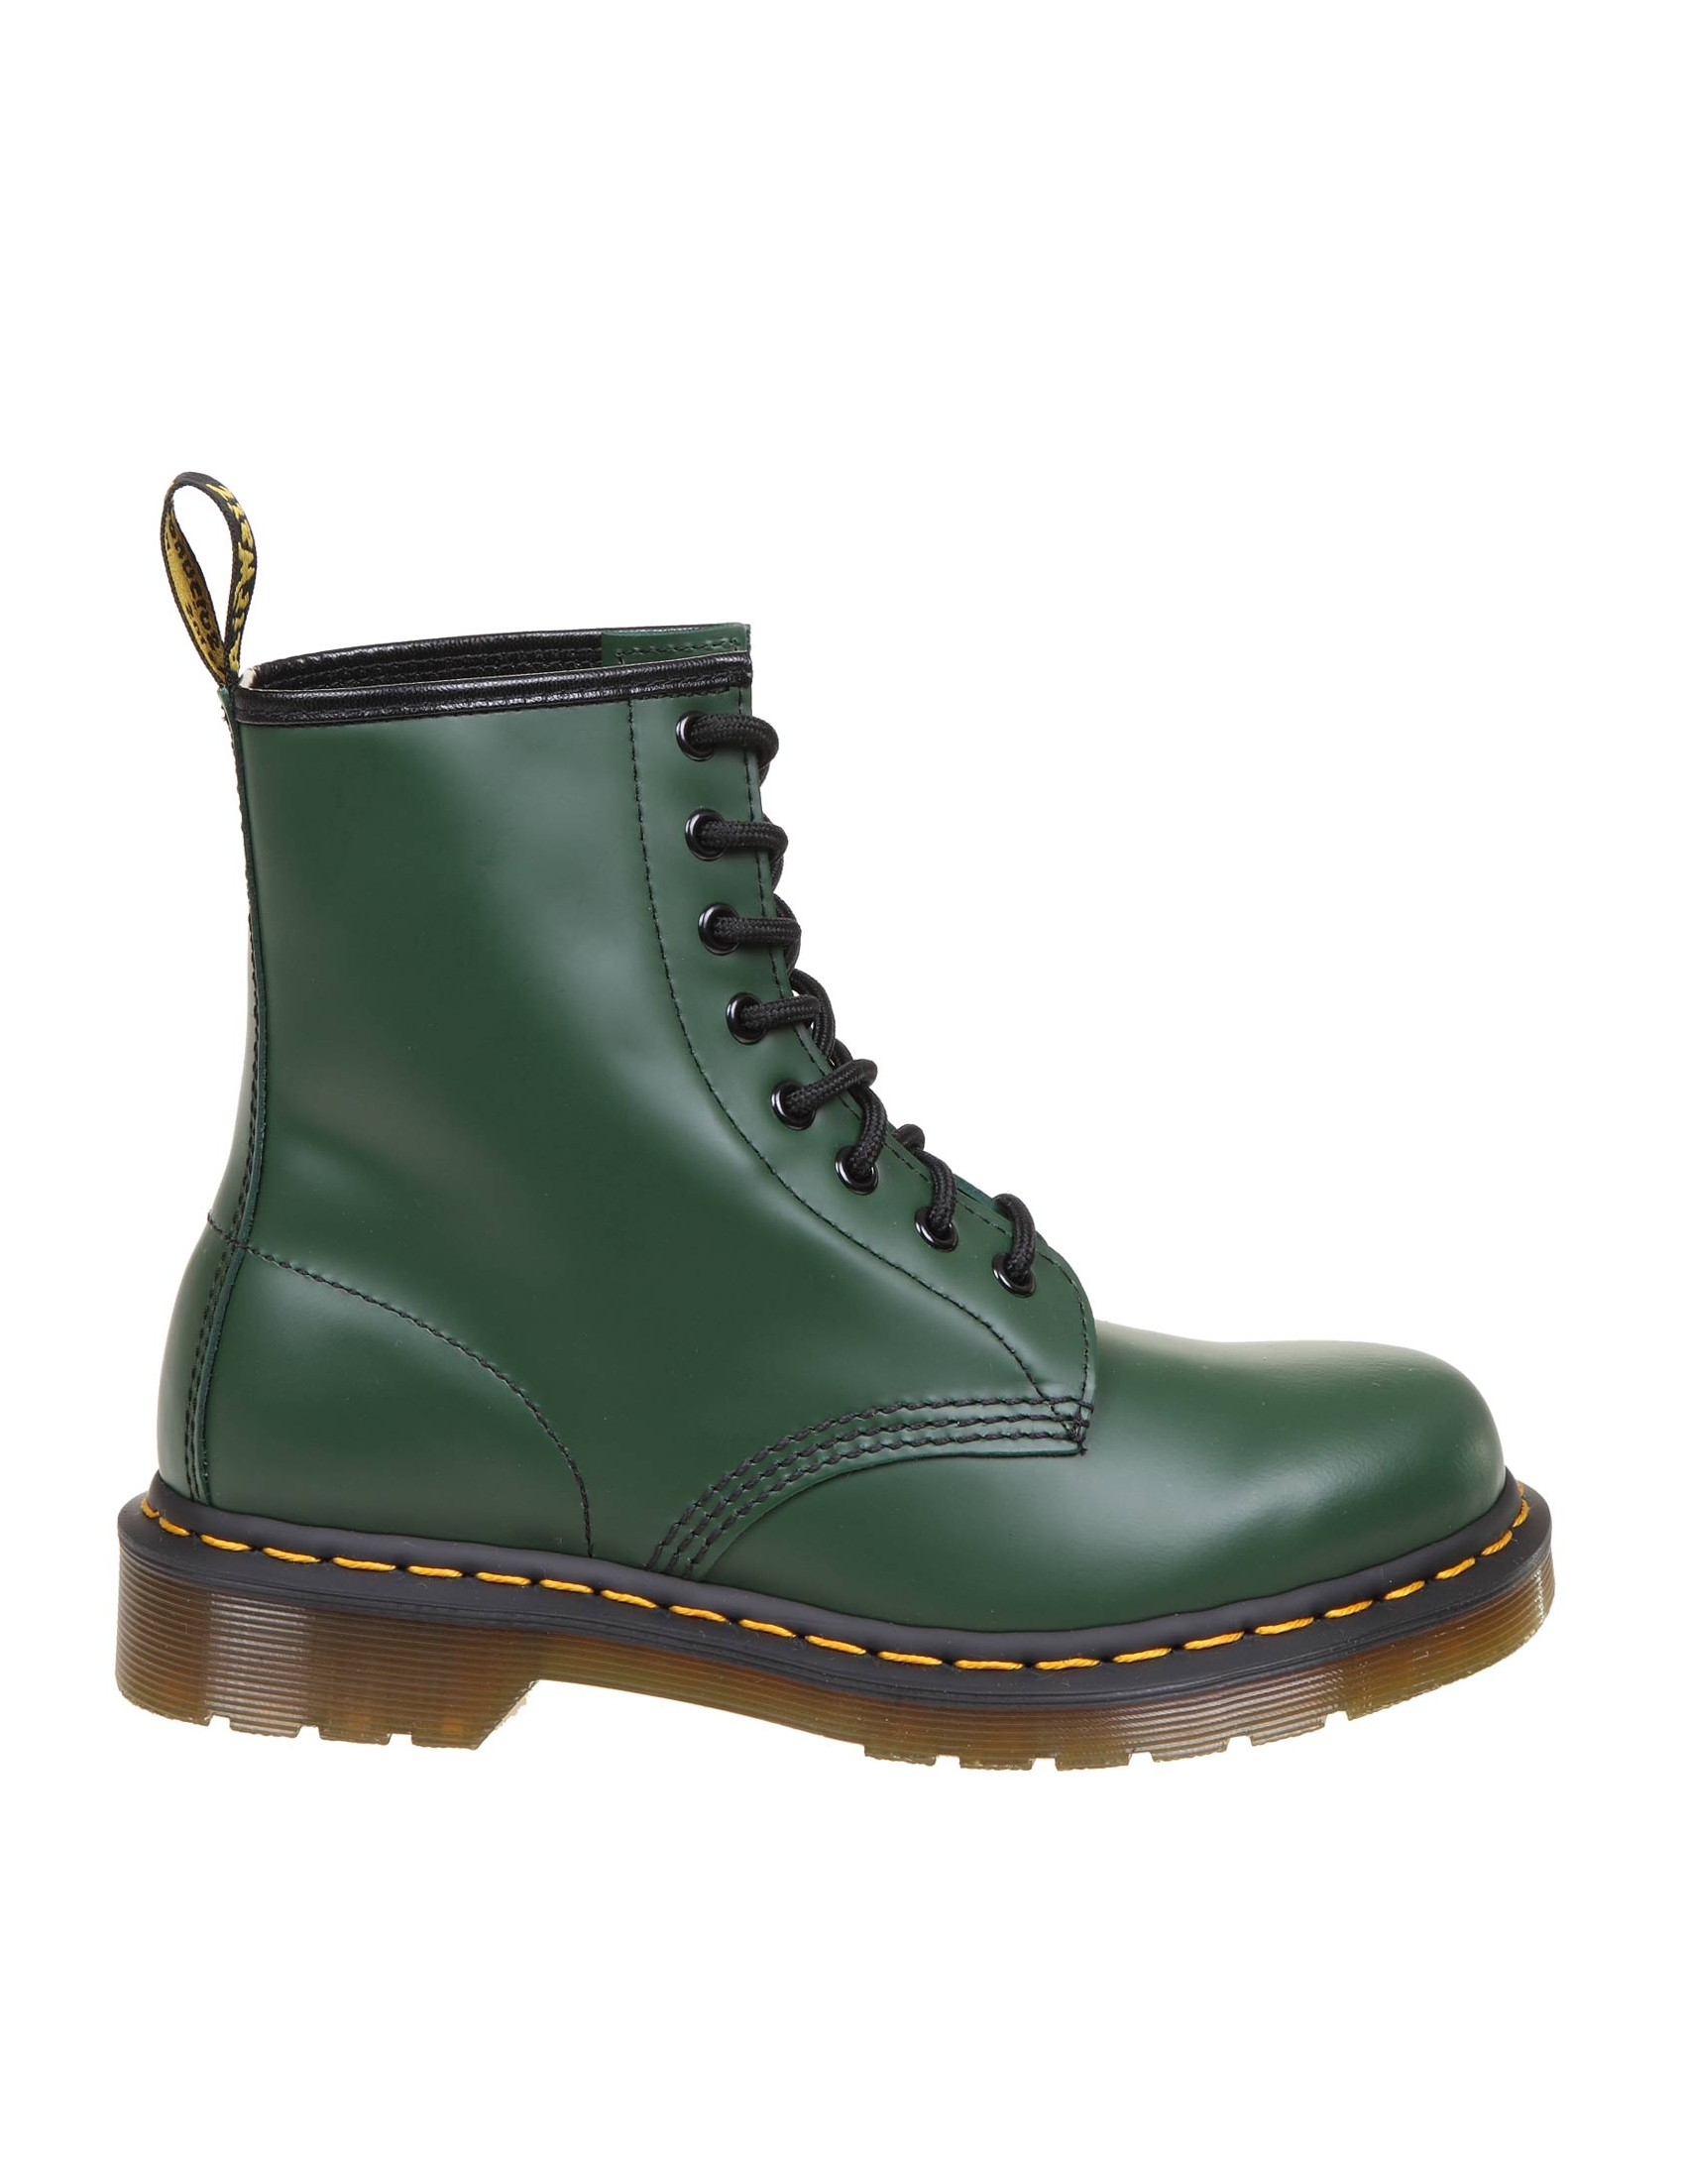 Dr. Martens DR. MARTENS SMOOTH BOOTS IN GREEN LEATHER